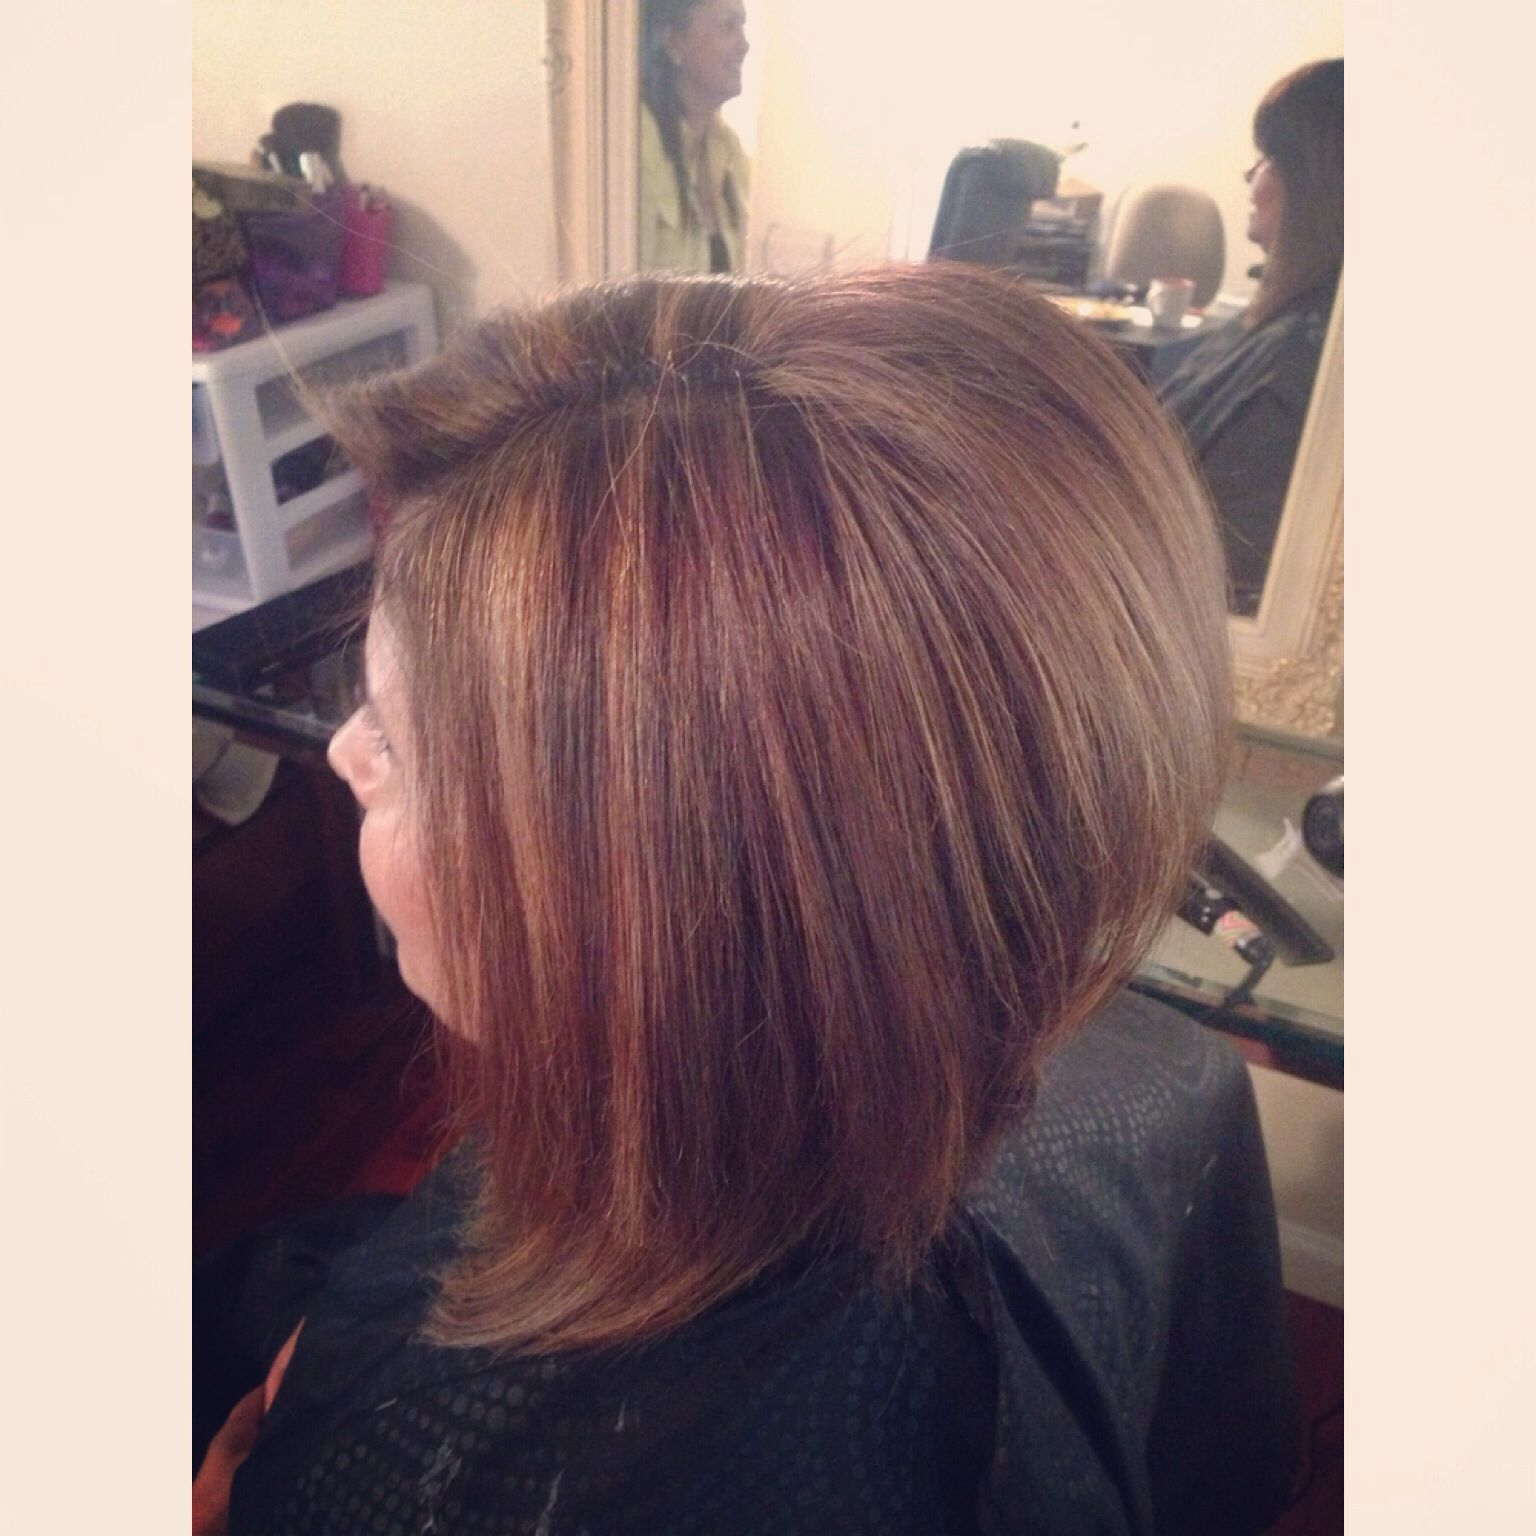 Highlights and graduated cut #Hairbygigiii